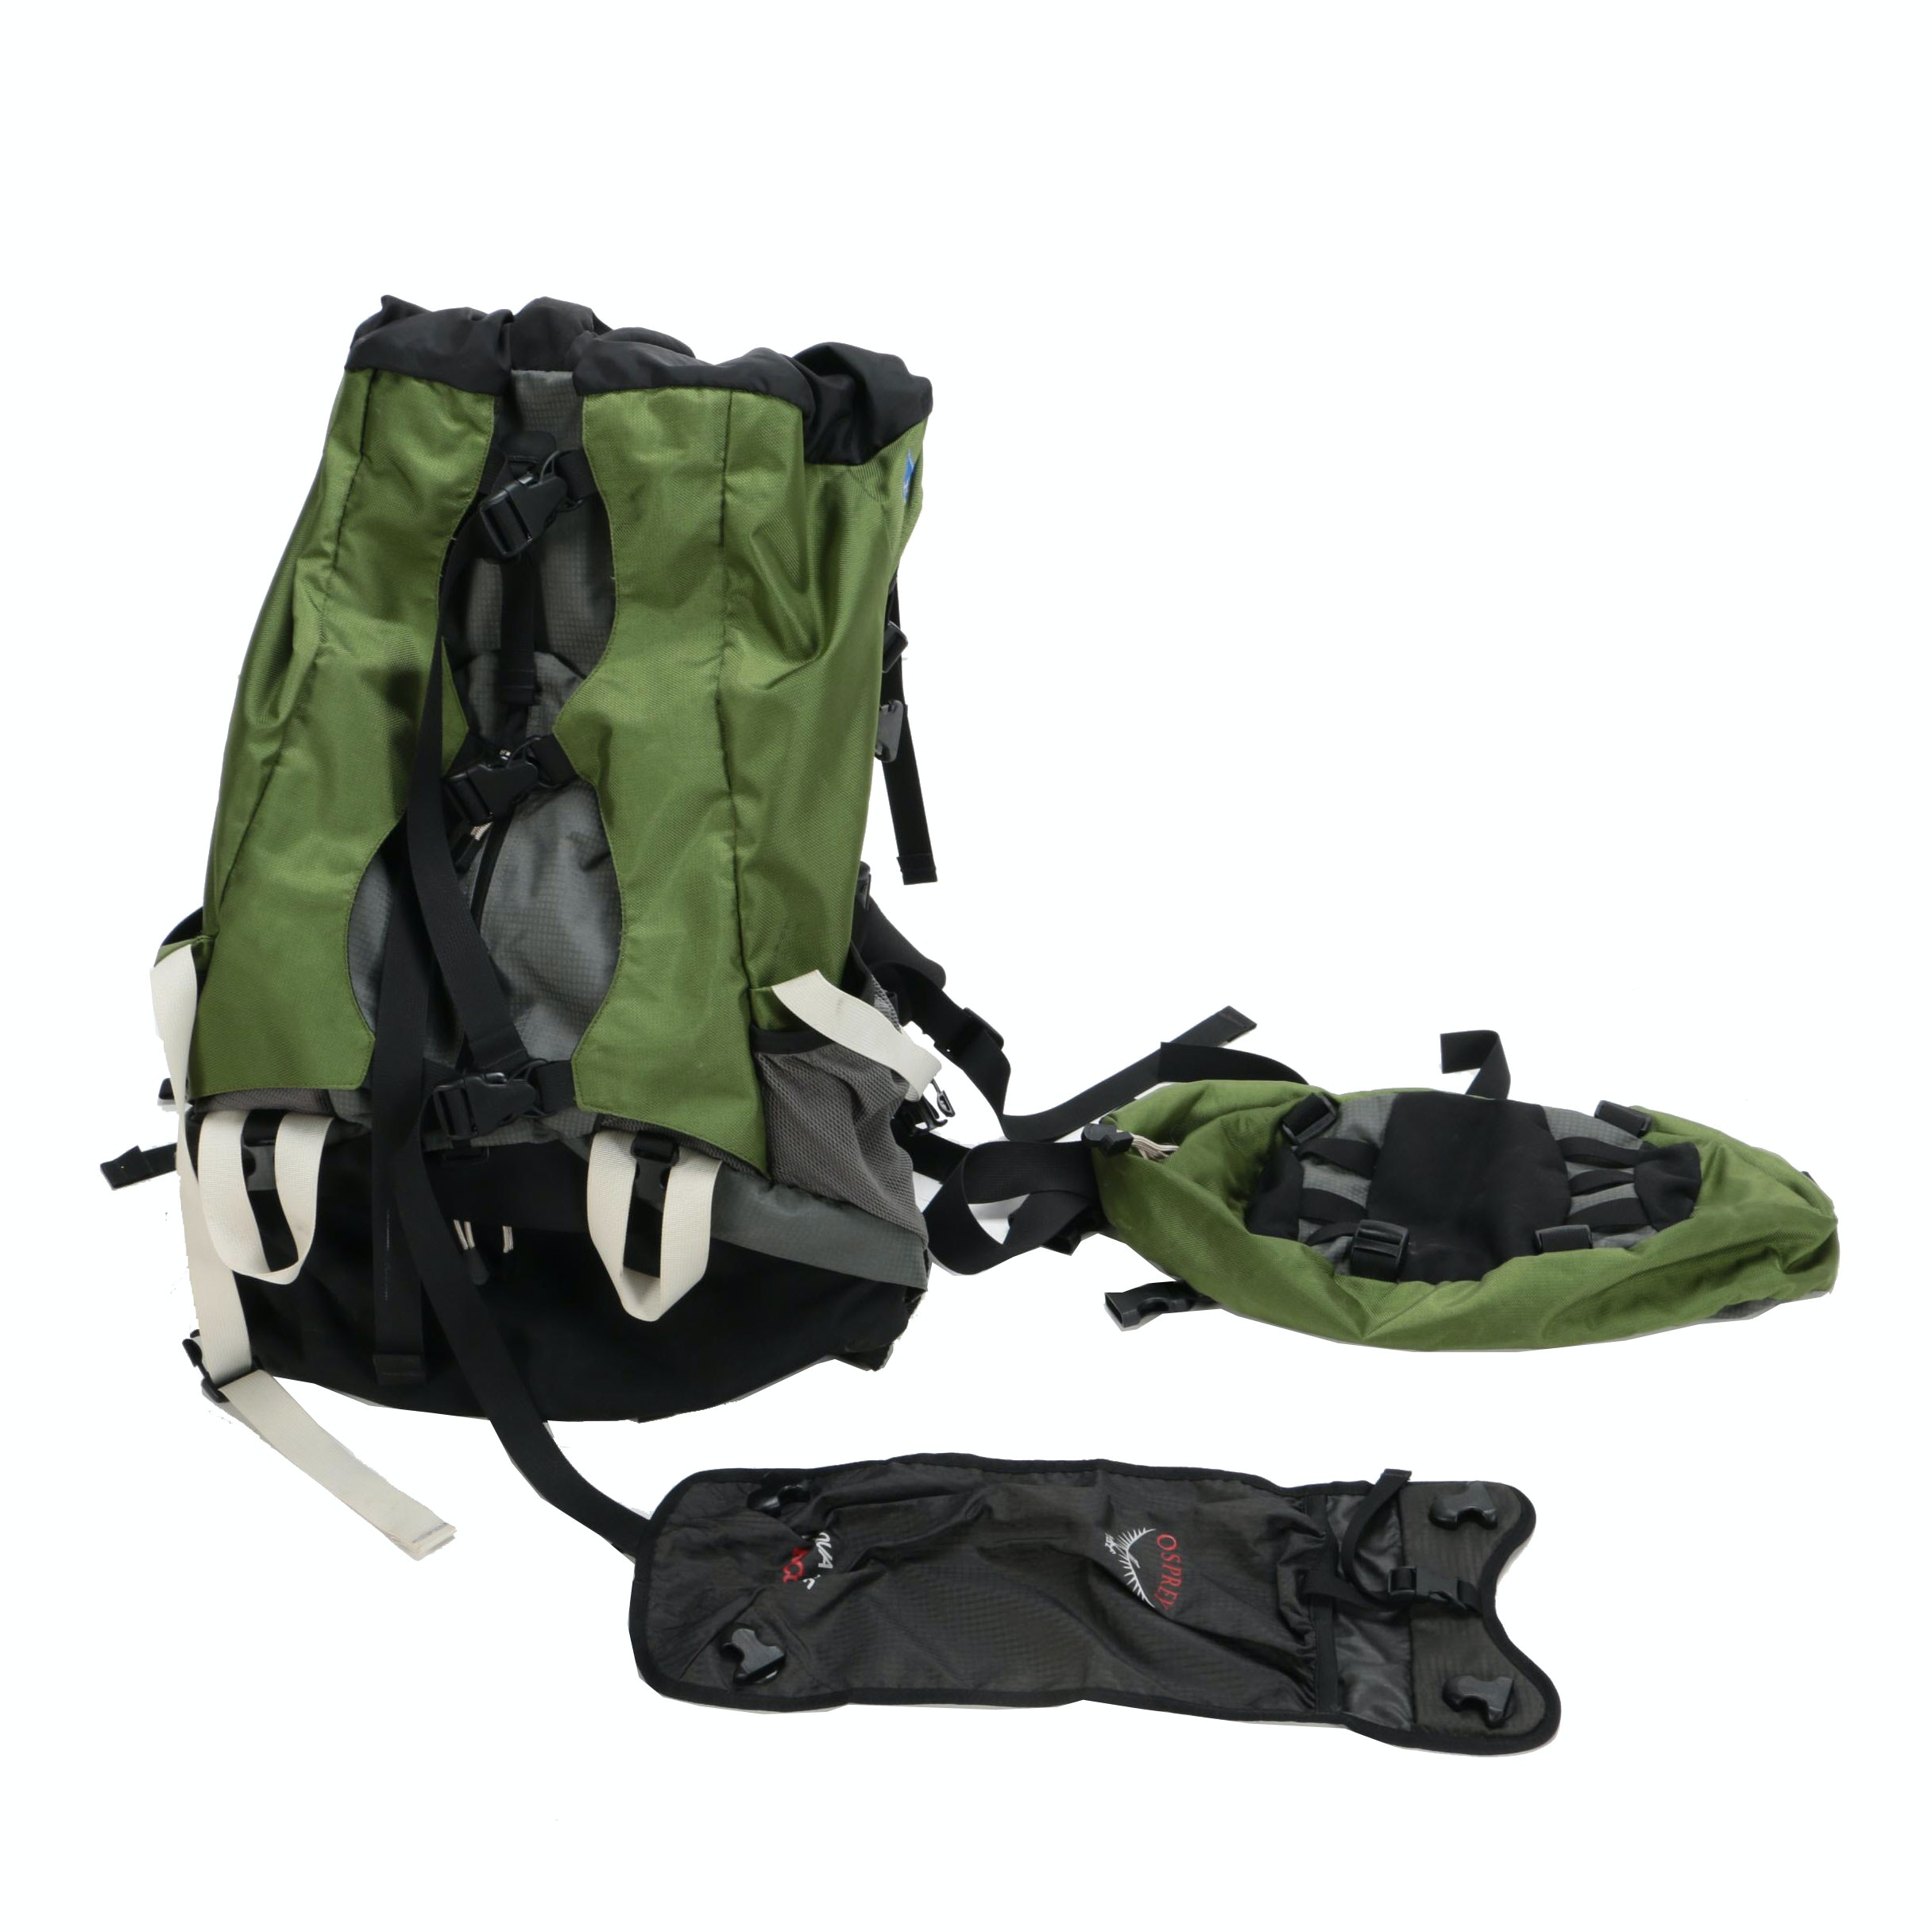 Osprey Nylon Hiking Backpack with BioForm Harness